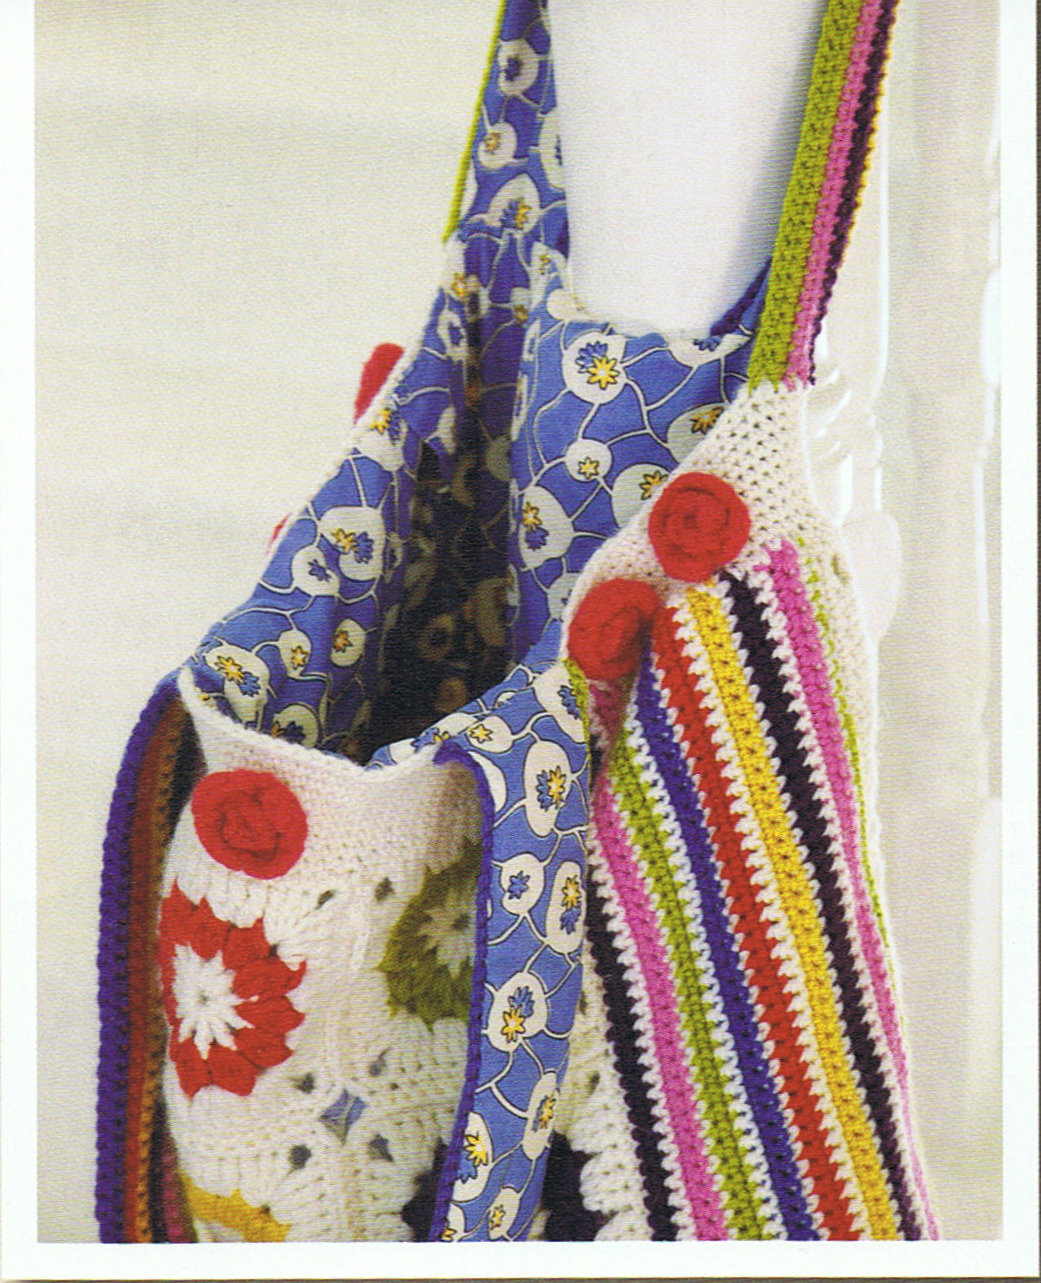 image geek chic crochet nicki trench patterns granny square bag felted